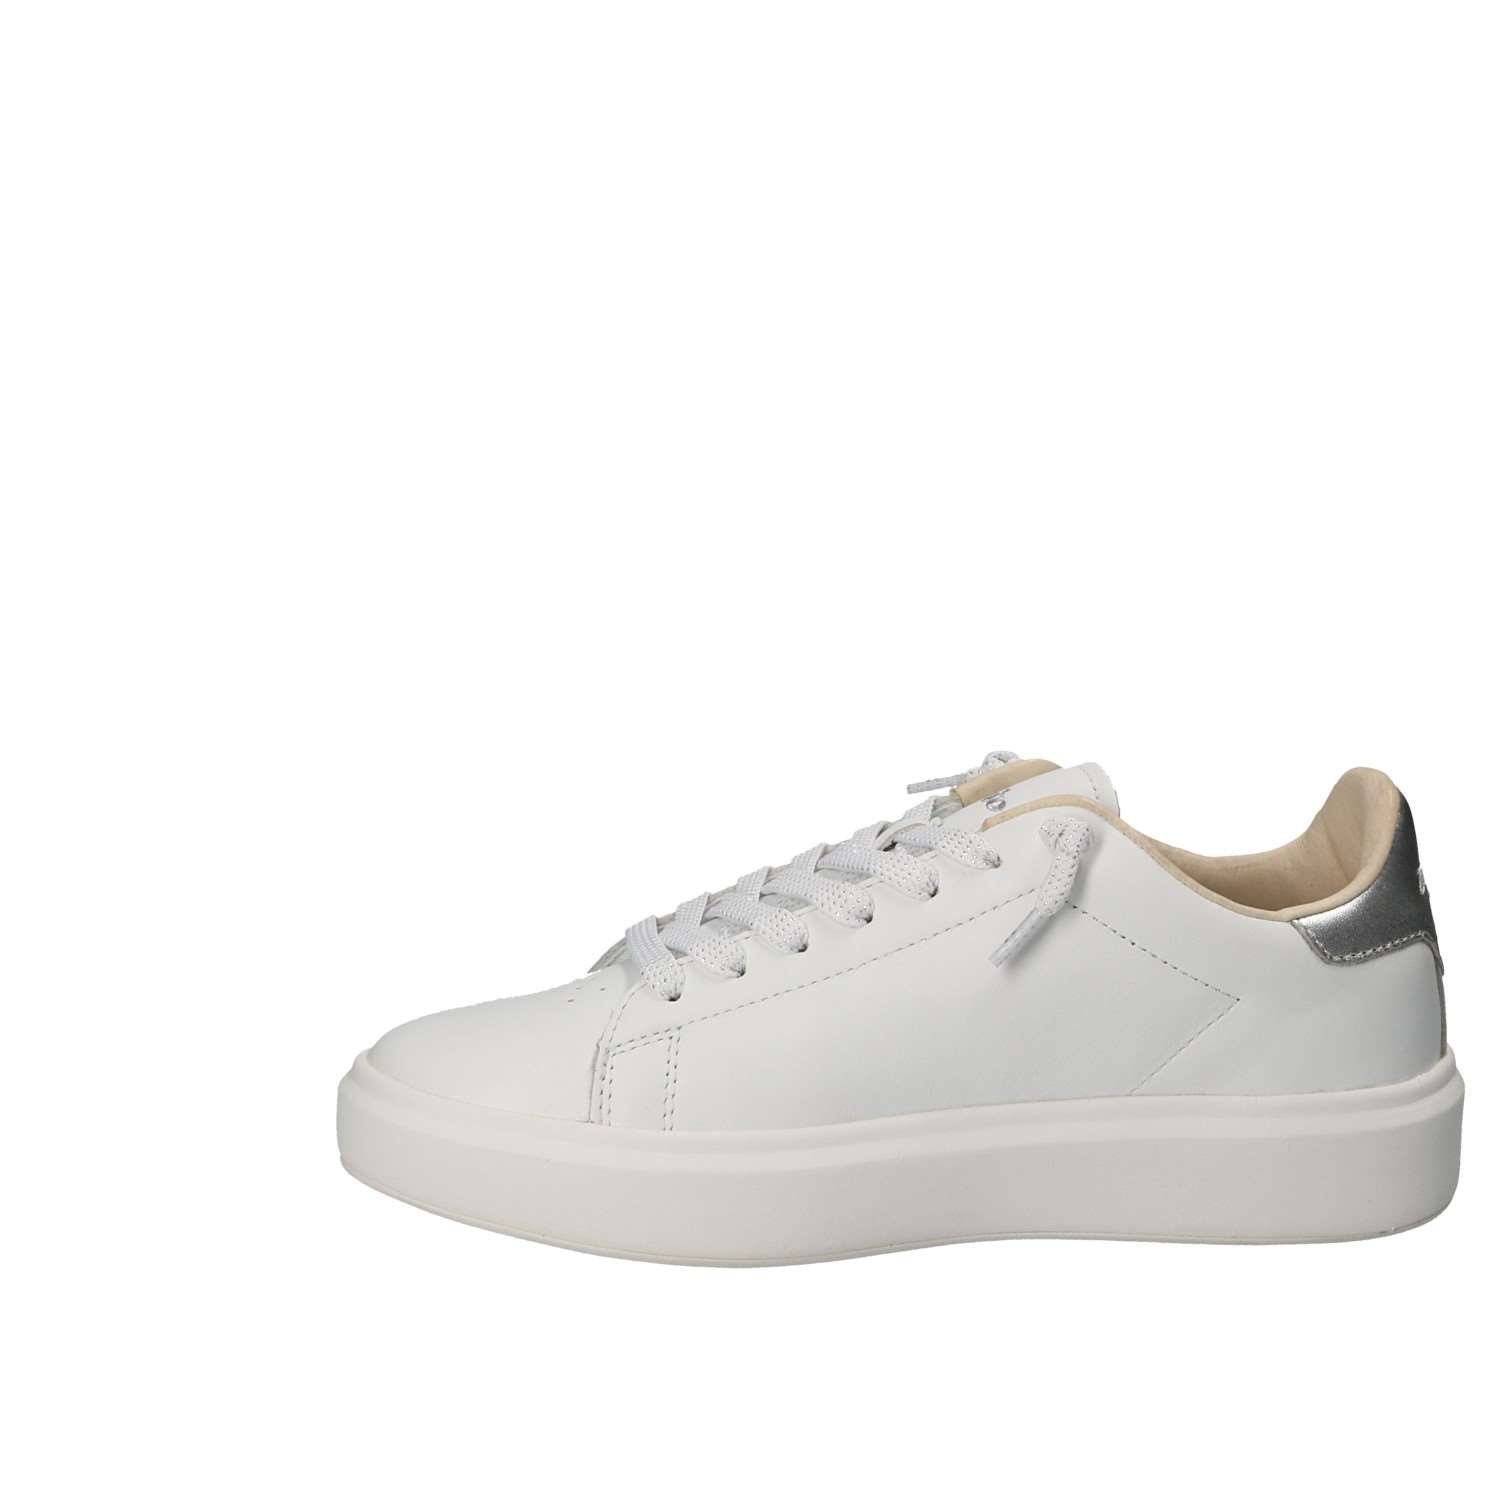 Lotto Sneakers Impressions Lht W Bianco-Argento T4612-39, Bianco